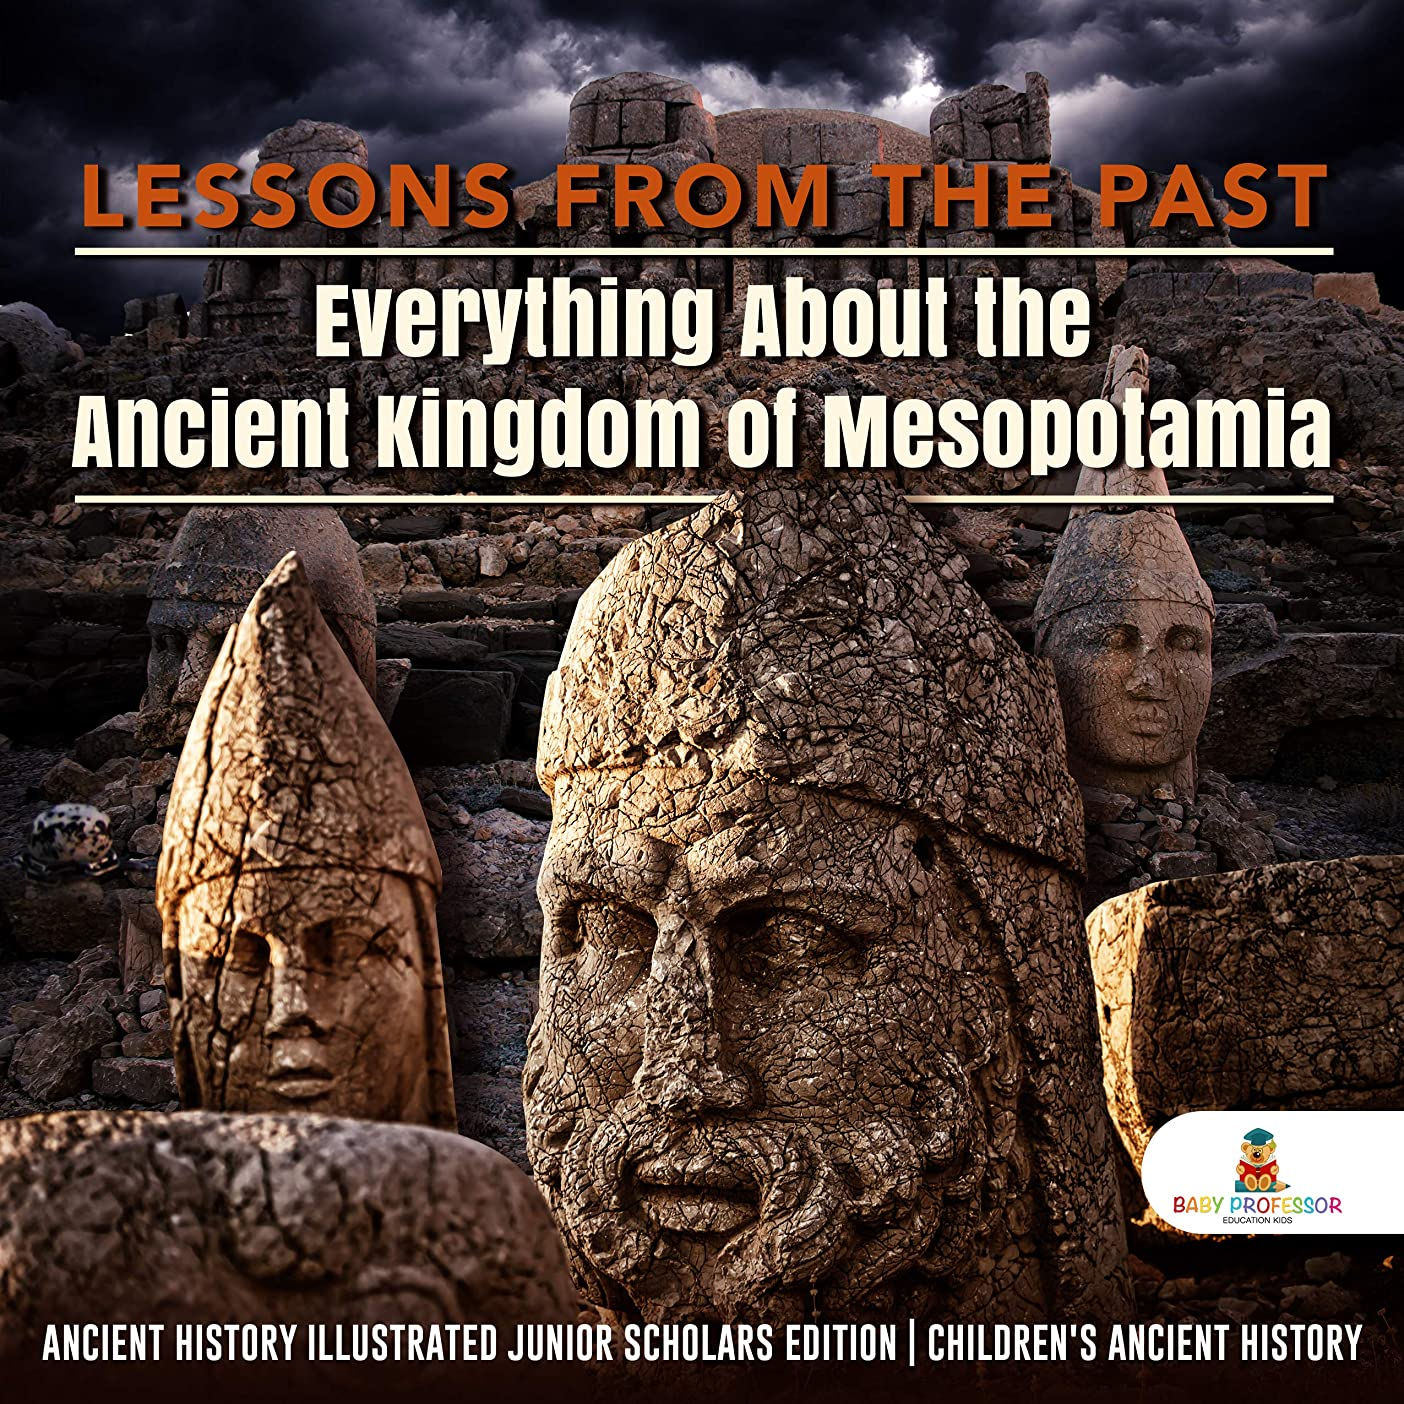 Lessons from the Past : Everything About the Ancient Kingdom of Mesopotamia | Ancient History Illustrated Junior Scholars Edition | Children's Ancient History (English Edition)